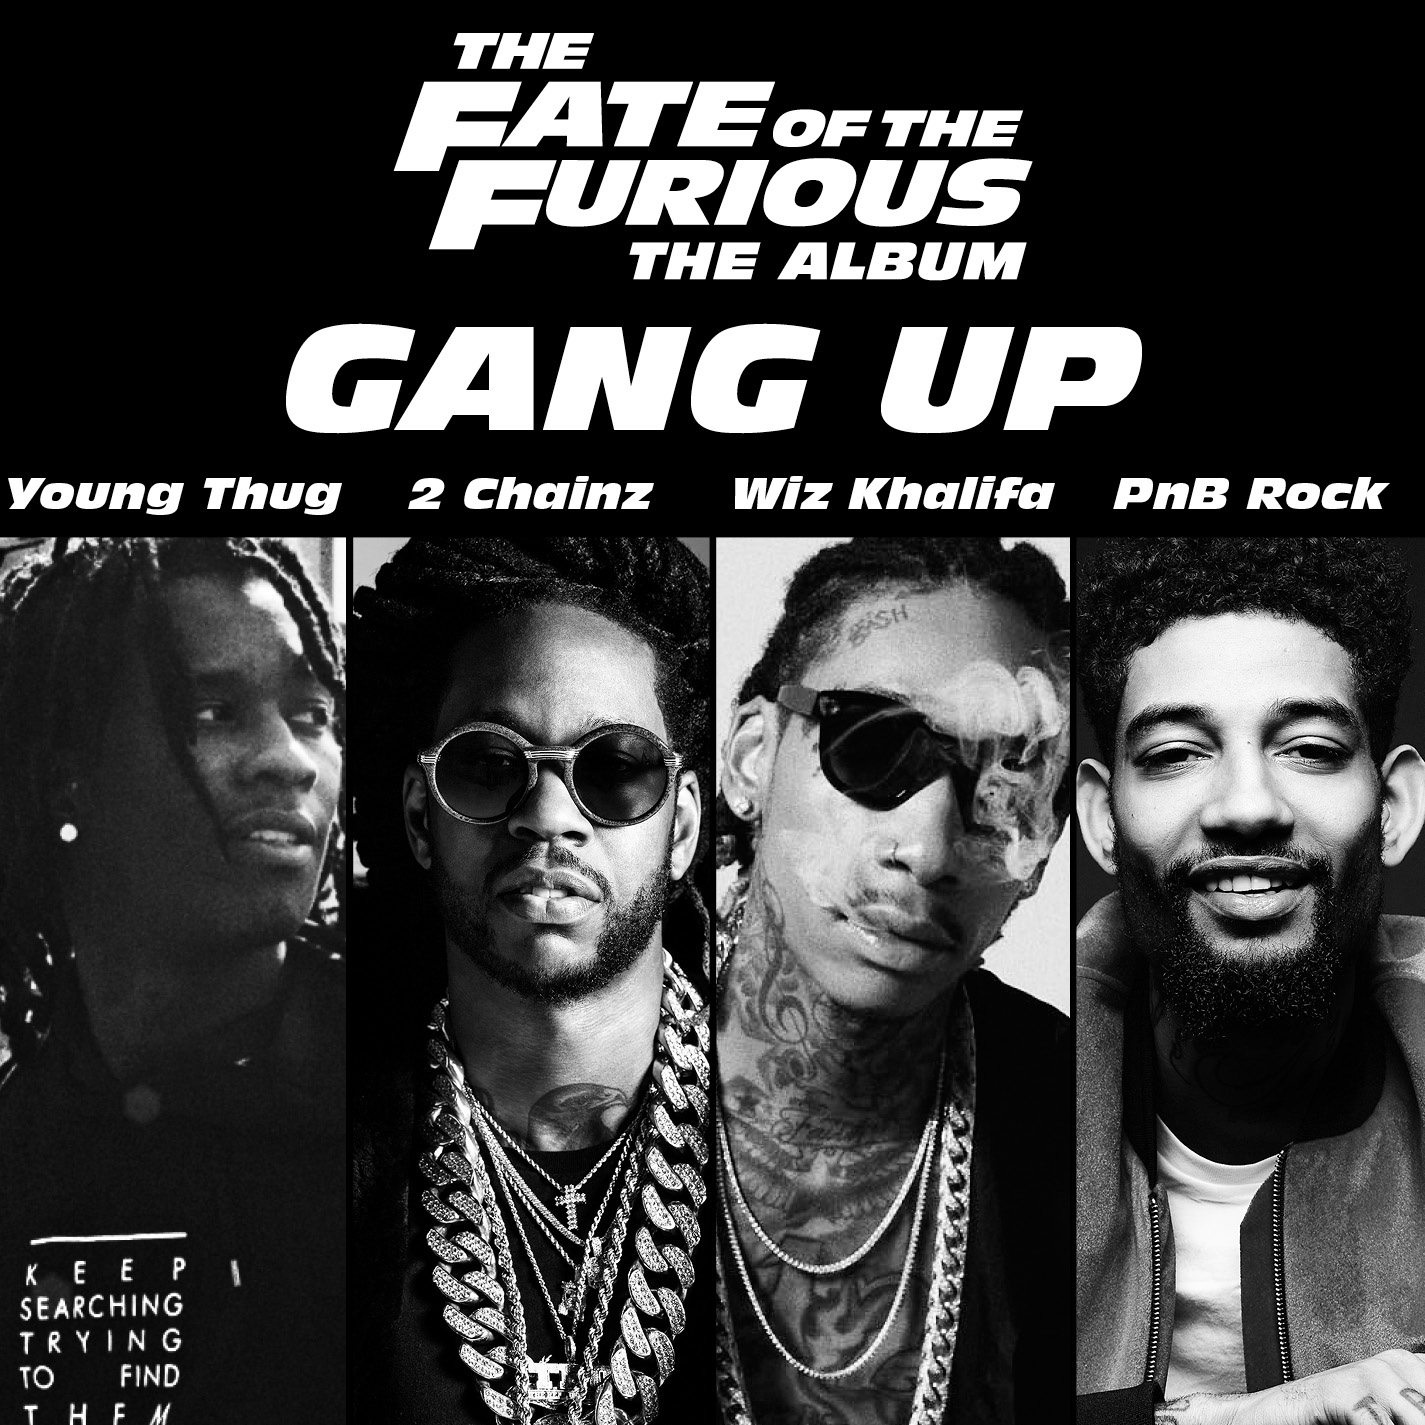 Young Thug, 2 Chainz, Wiz Khalifa & PnB Rock – Gang Up (The Fate of the Furious: The Album) [AUDIO]